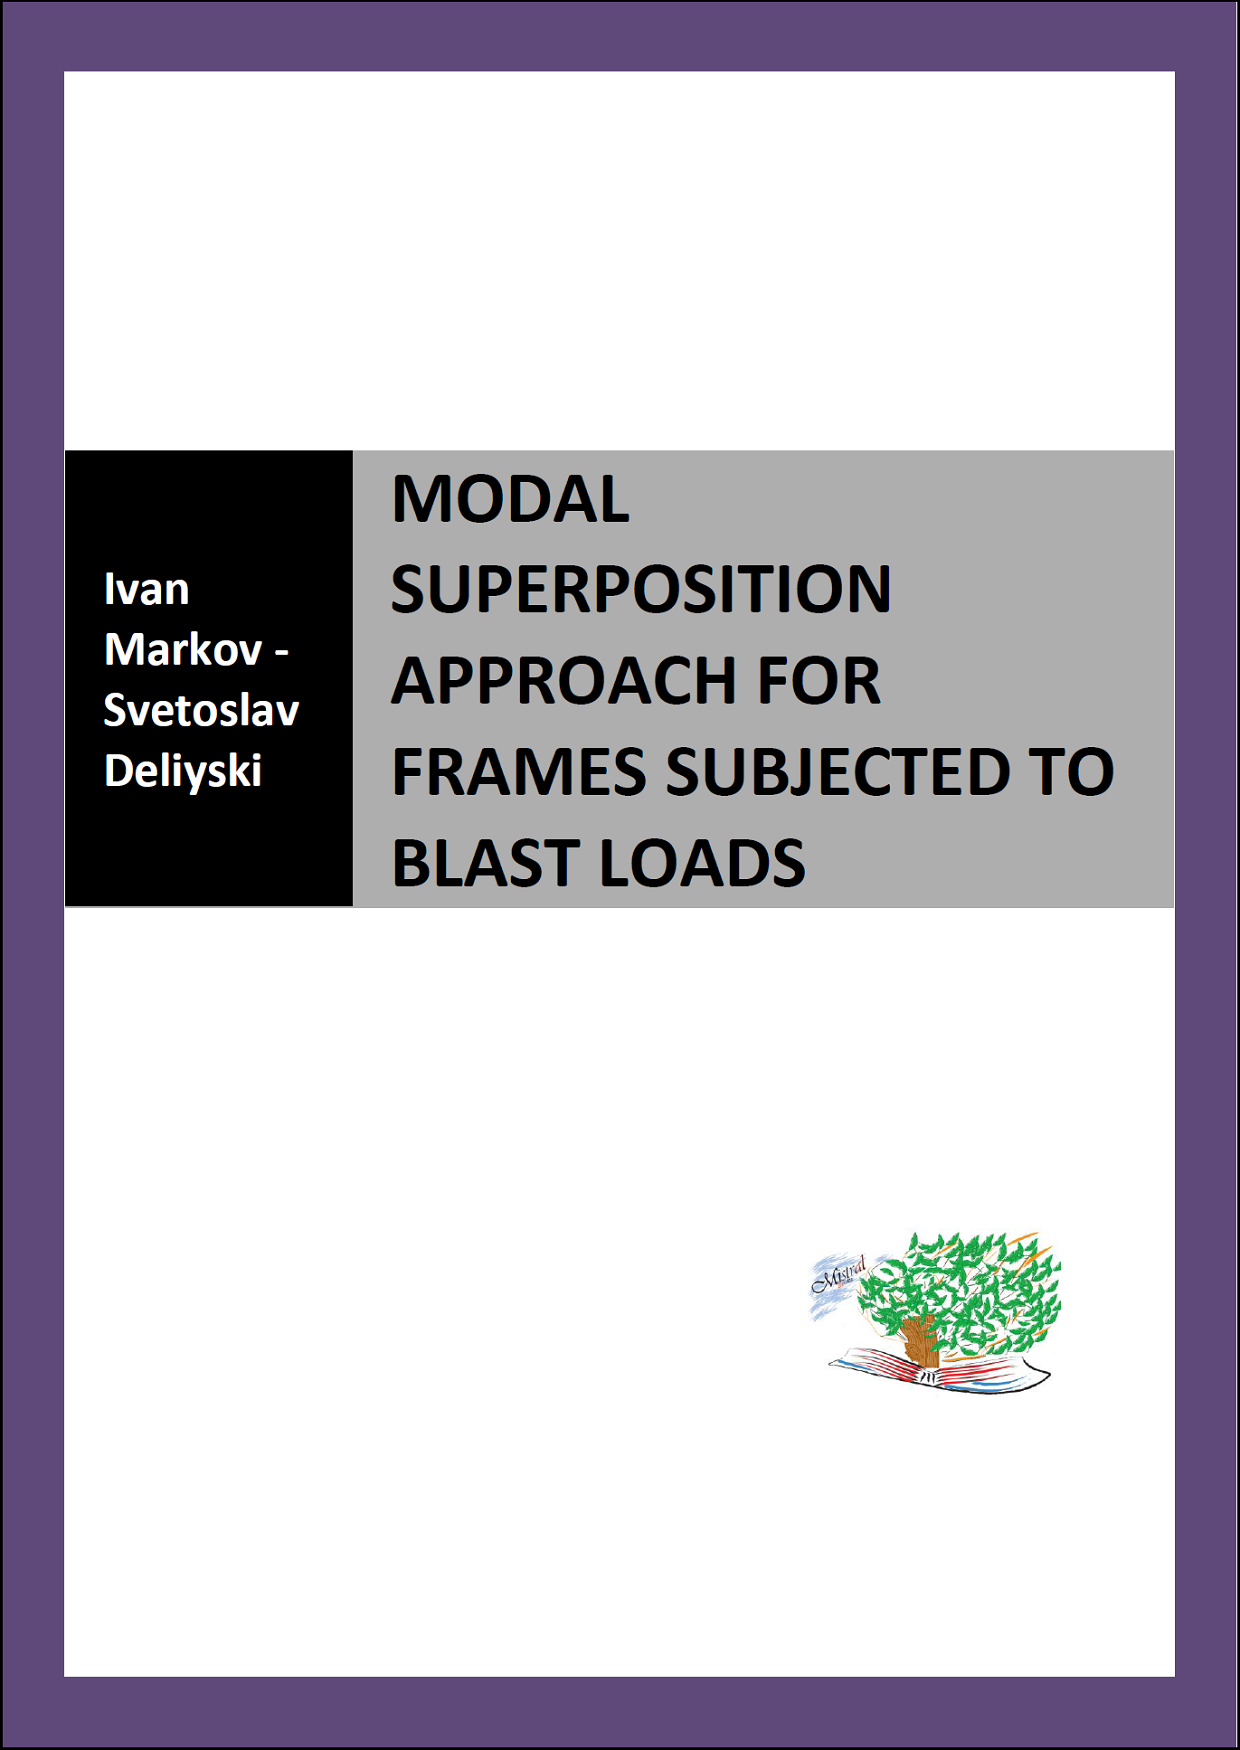 Modal Superposition Approach For Frames Subjected To Blast Loads